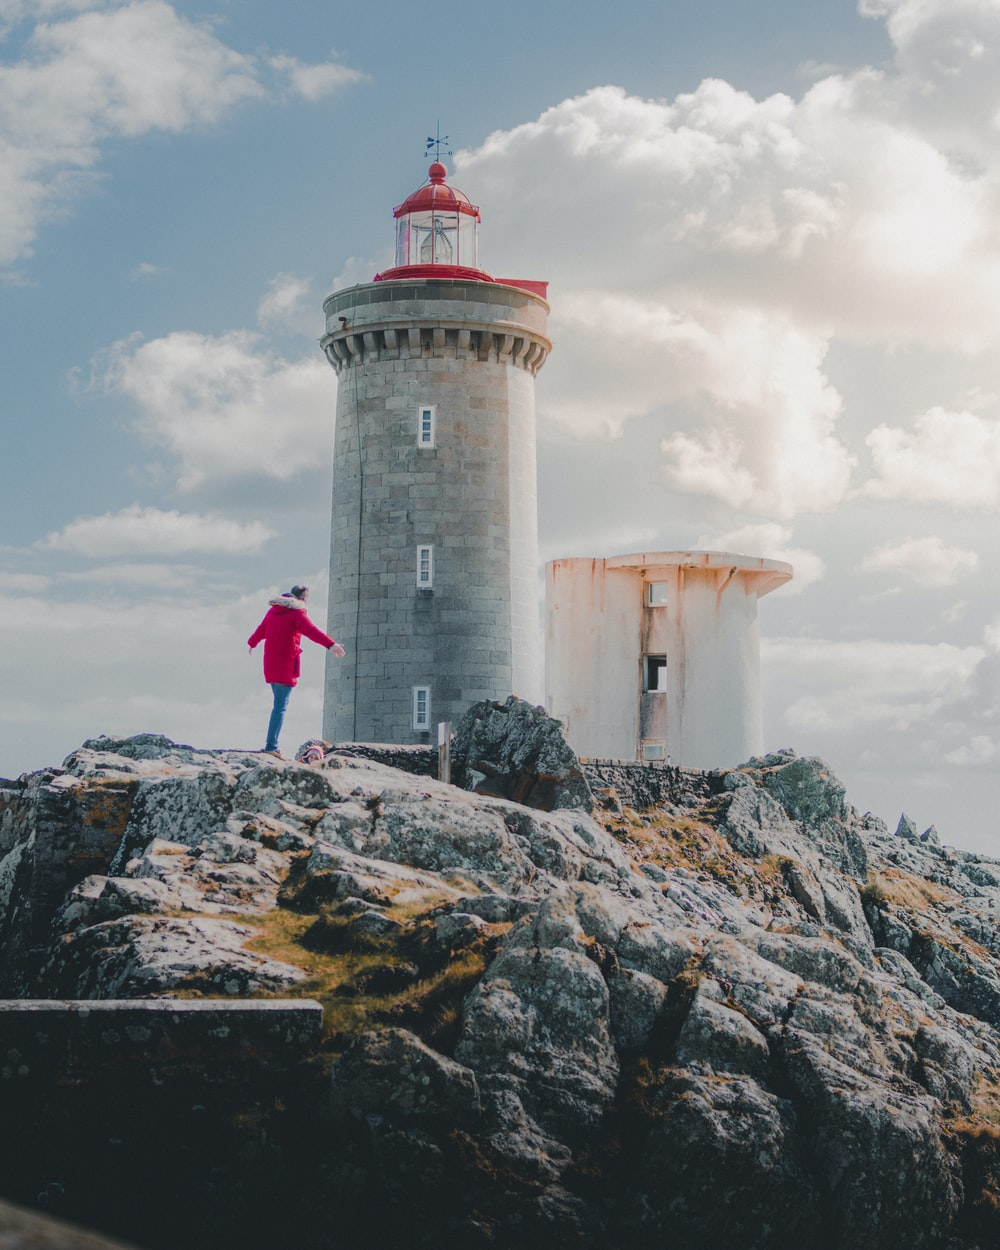 person standing near the lighthouse